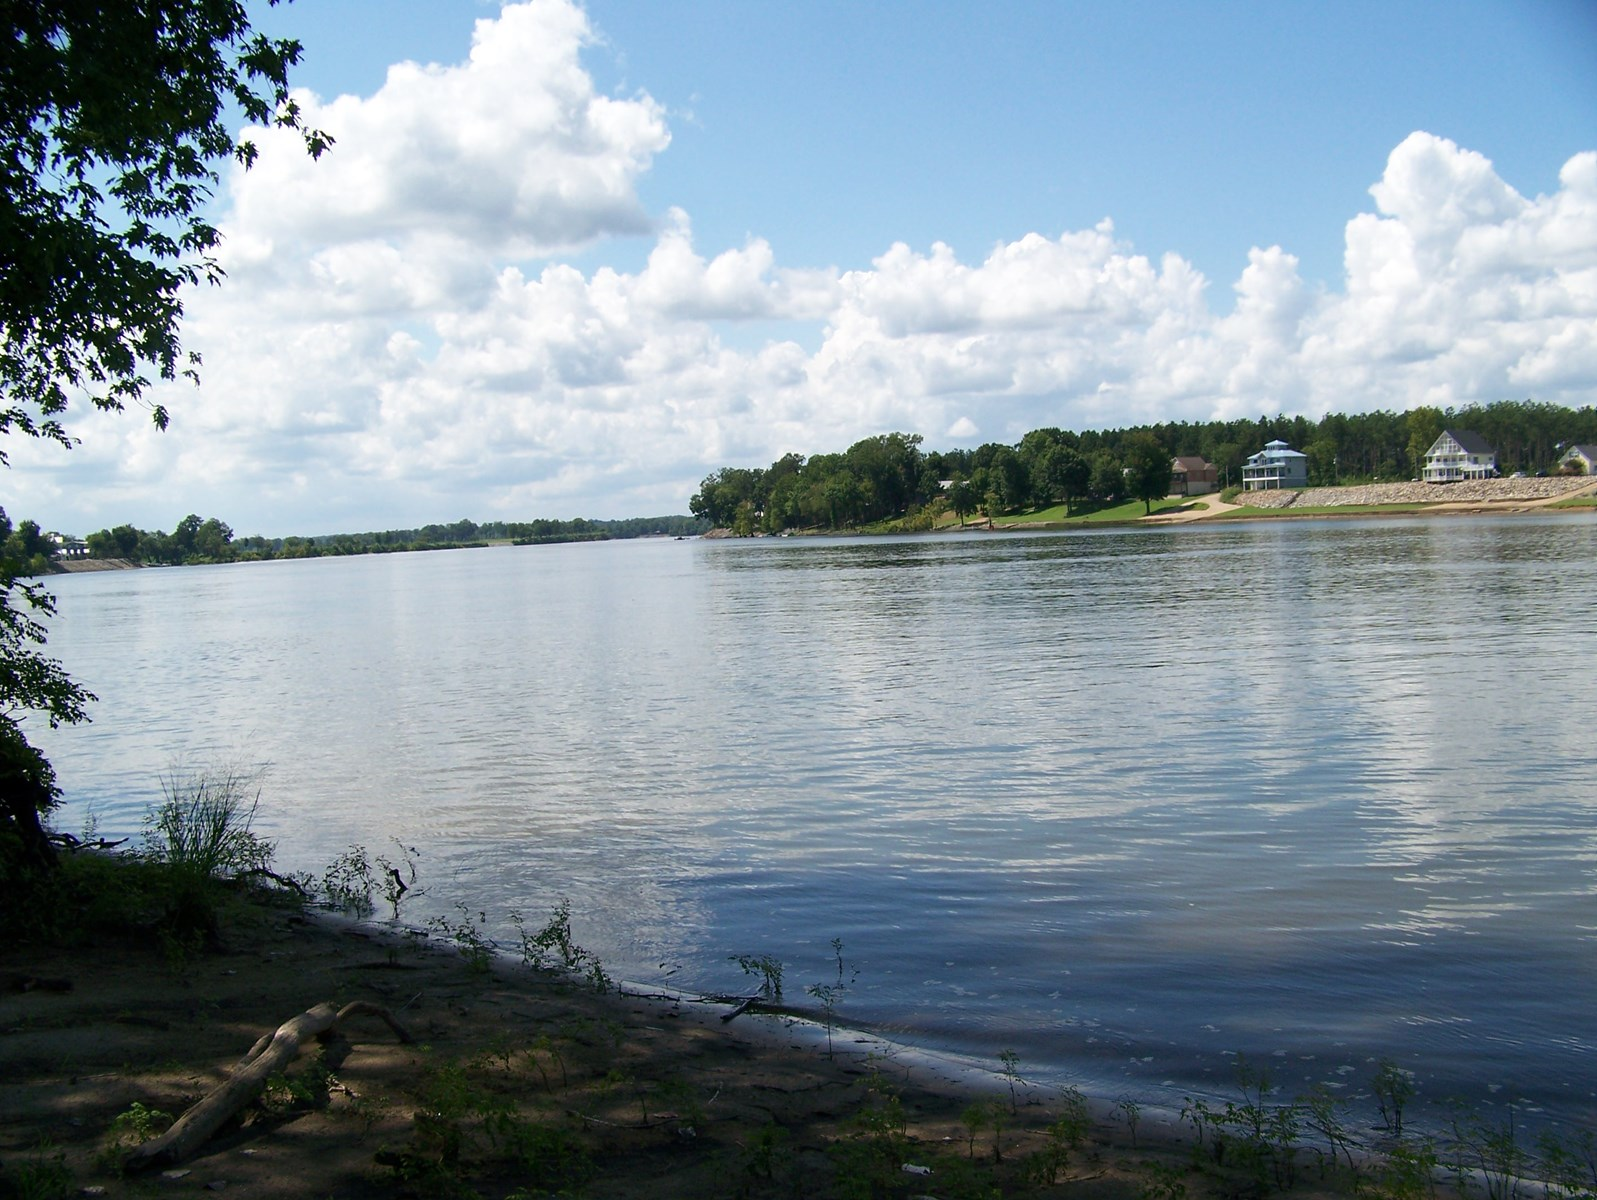 WATERFRONT LAND FOR SALE IN TN – RIVERFRONT, FISHING